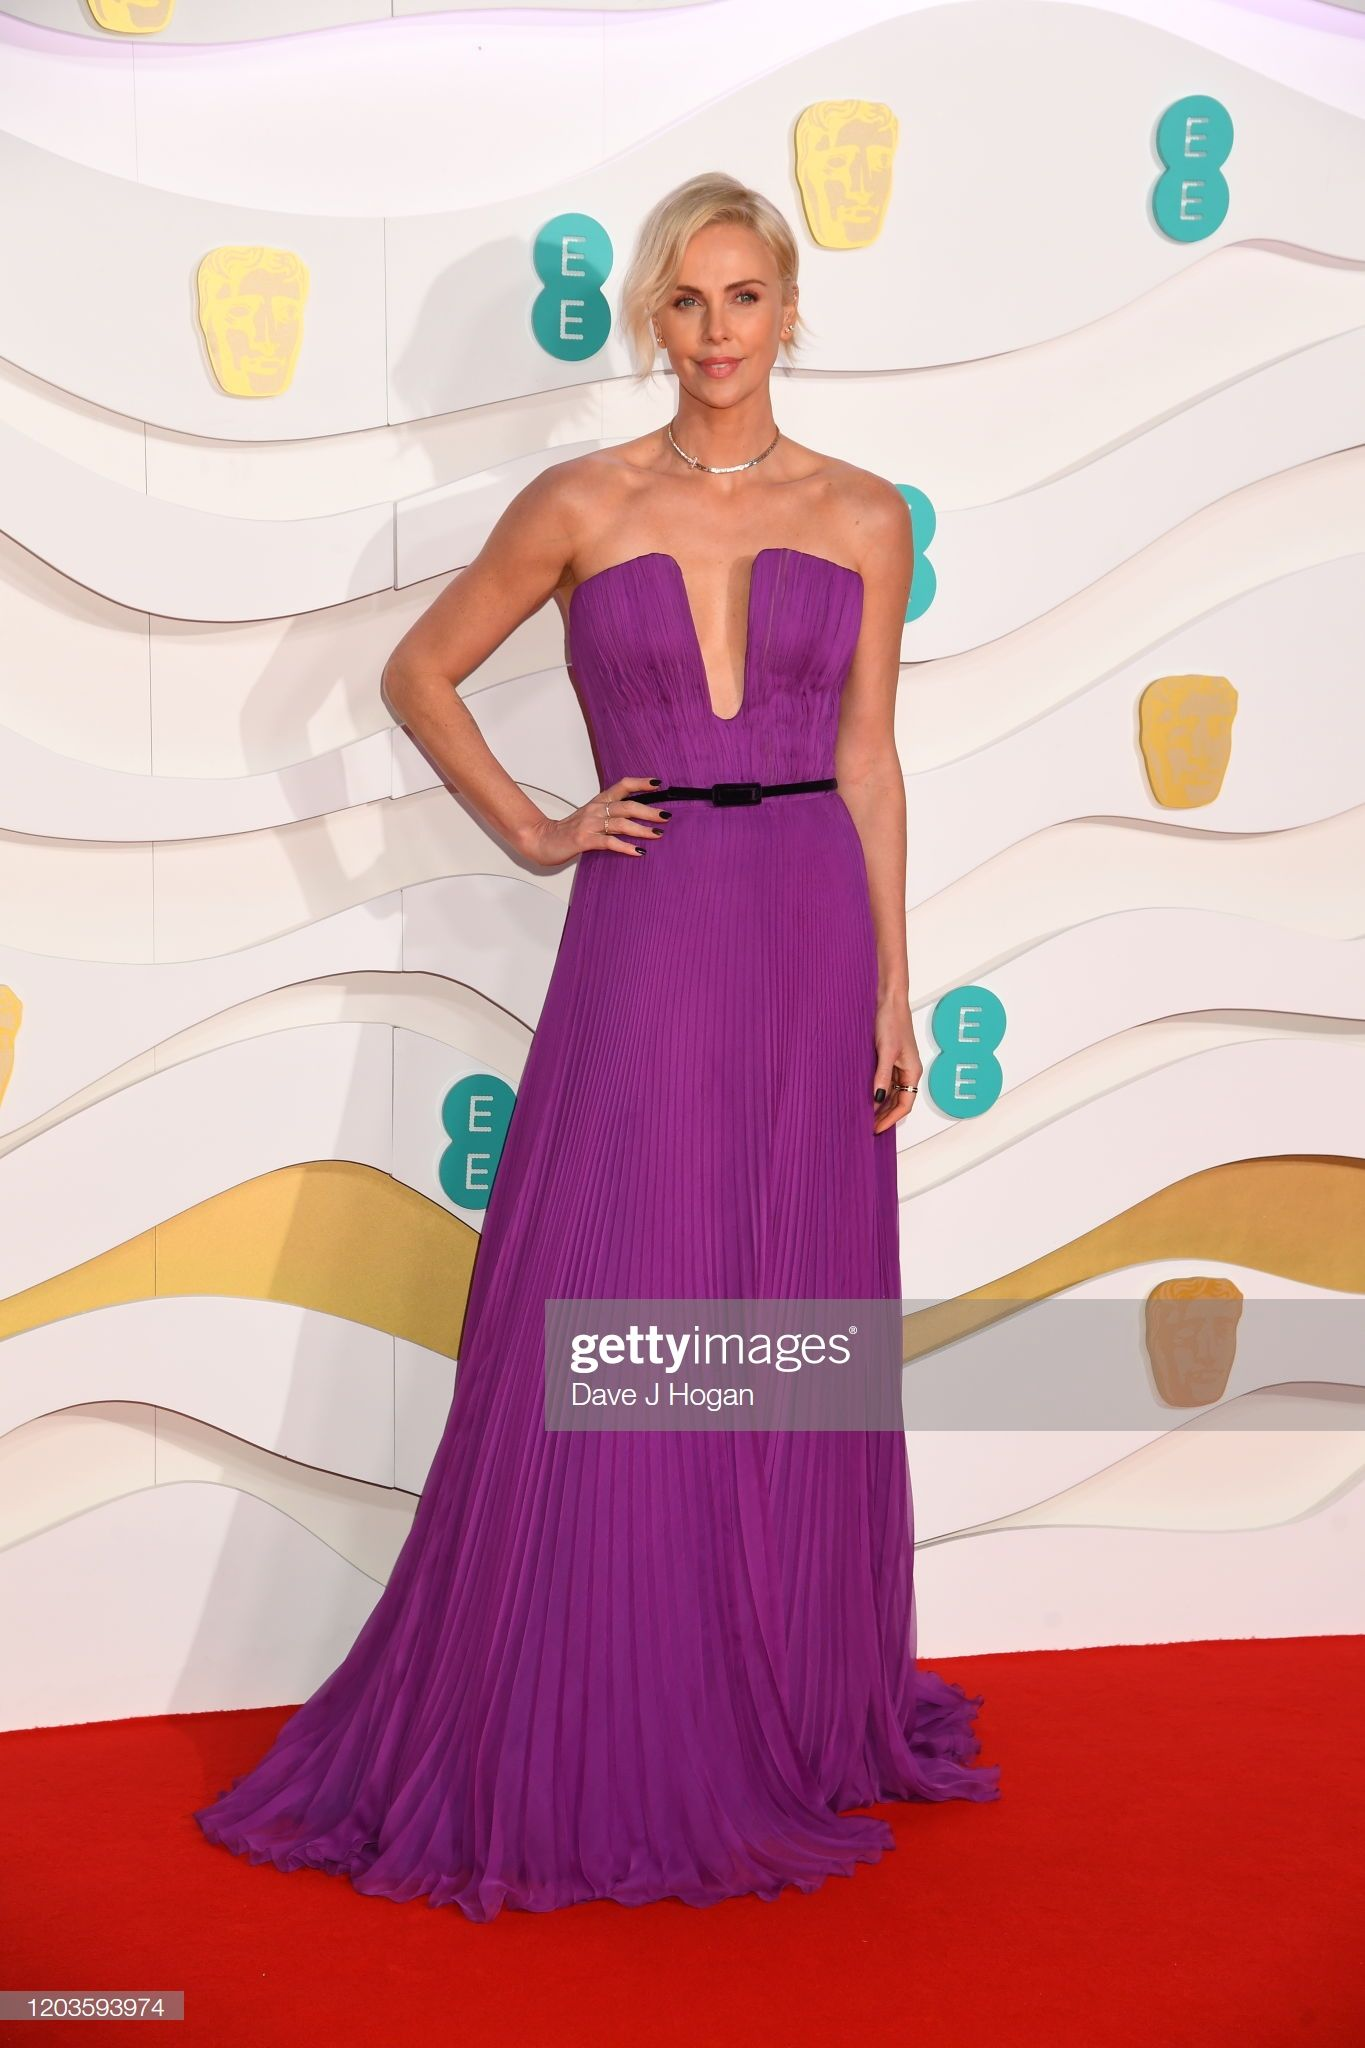 Charlize Theron Attends The Ee British Academy Film Awards 2020 At In 2020 Nice Dresses Purple Gowns Strapless Dress Formal